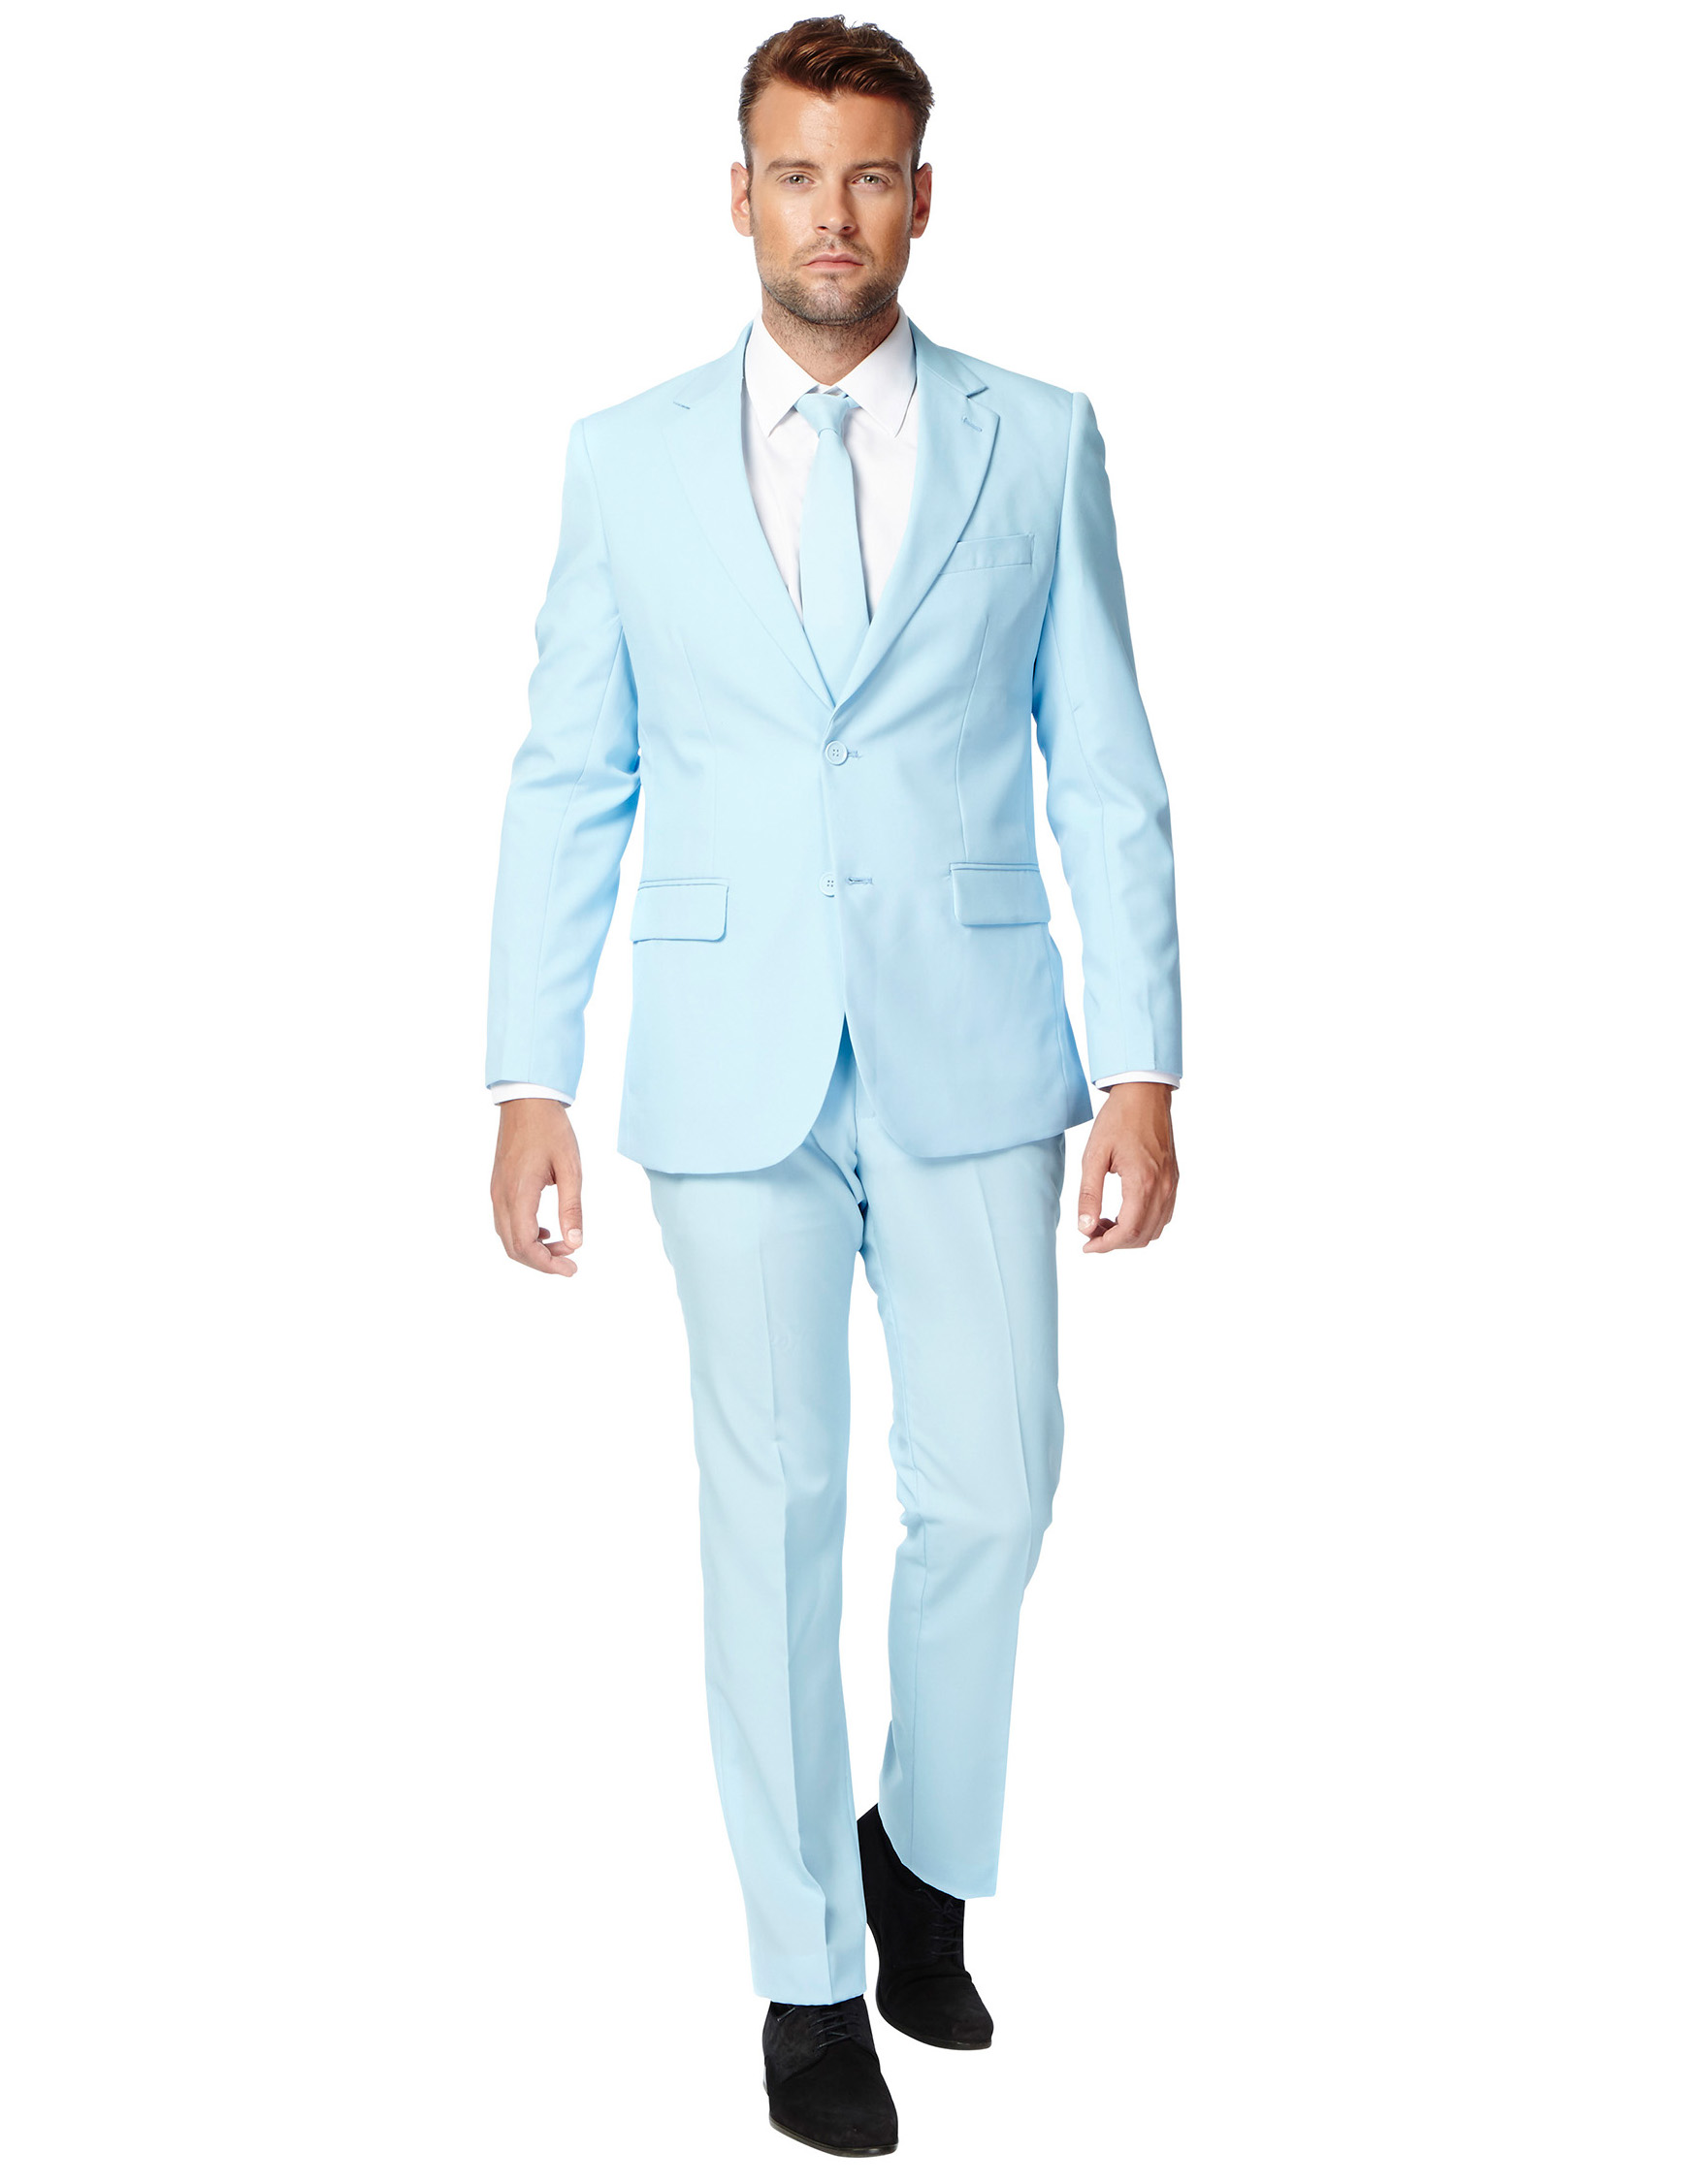 opposuits anzug in hellblau f r herren cool blue. Black Bedroom Furniture Sets. Home Design Ideas